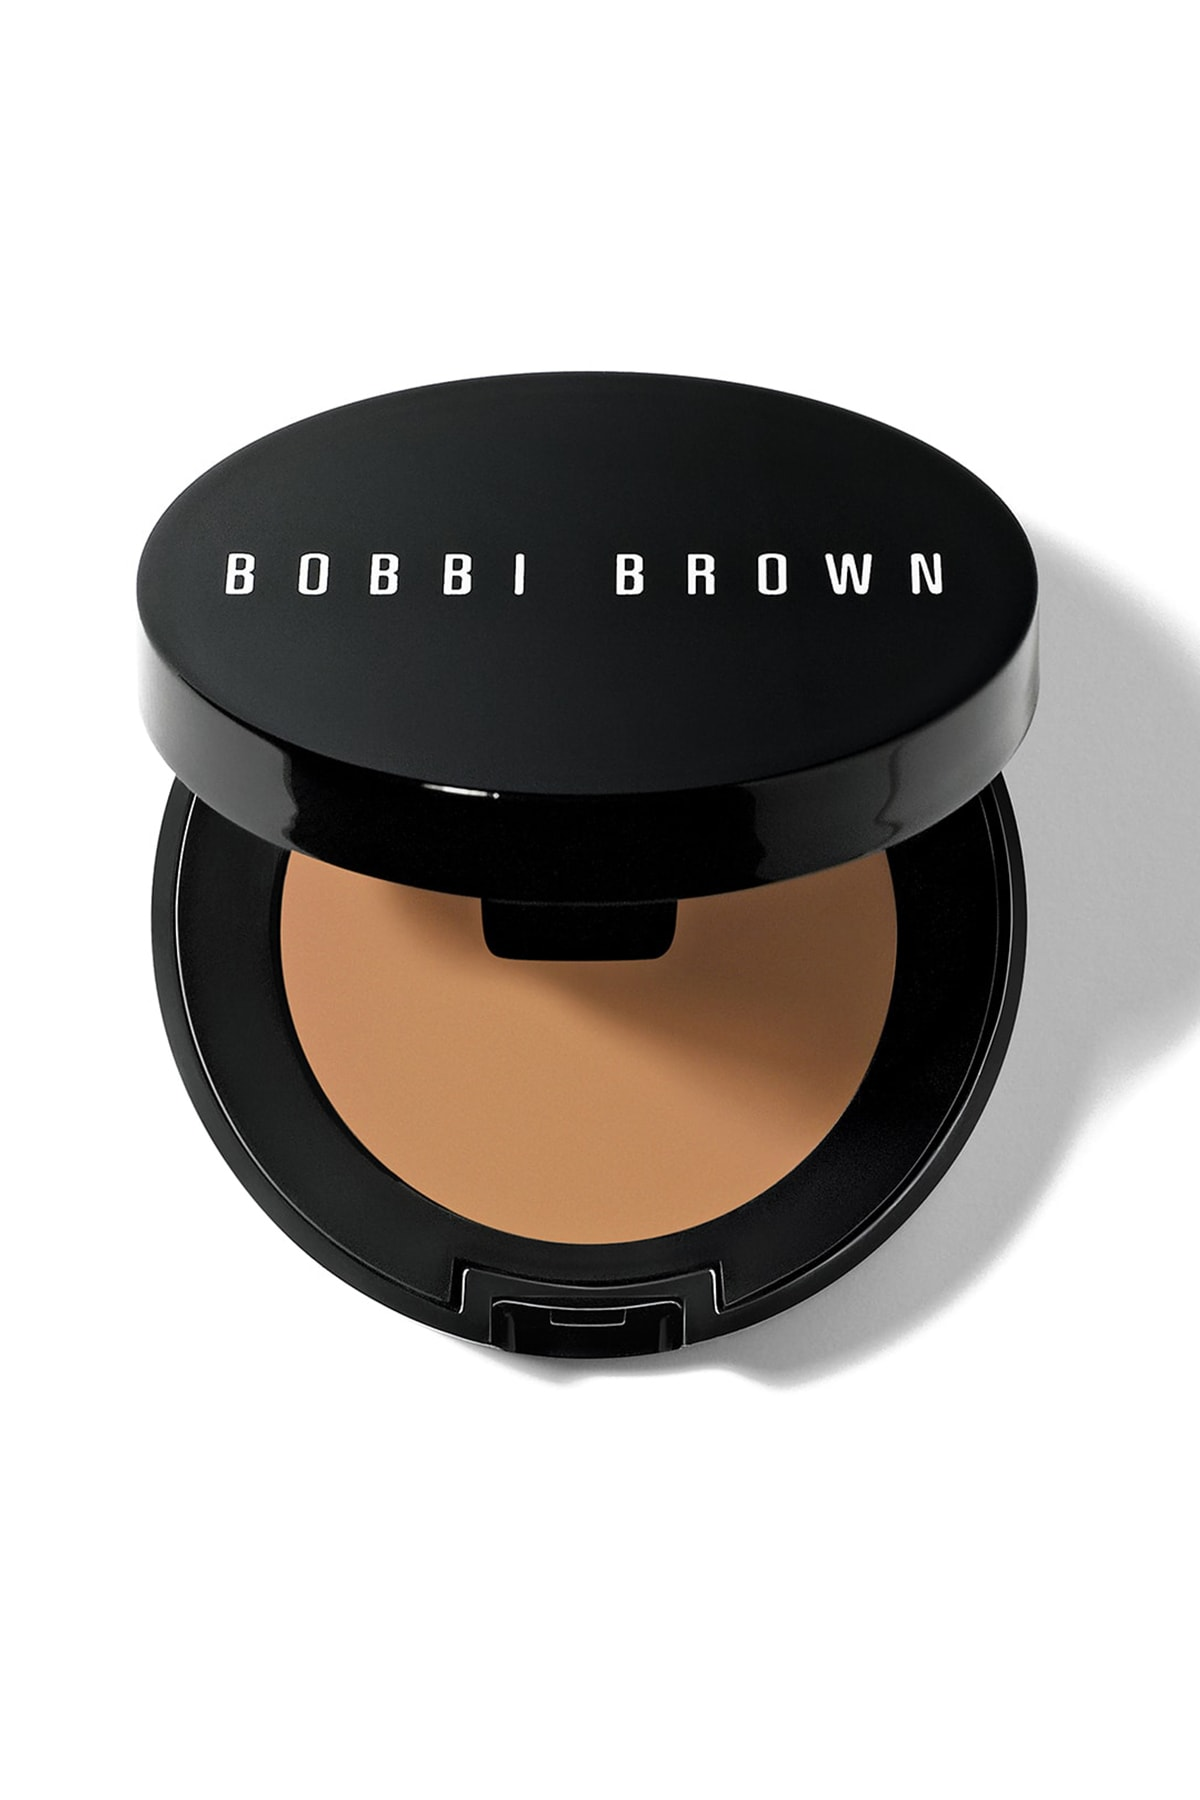 BOBBI BROWN Kapatıcı - Corrector Peach 1.4 g 716170086750